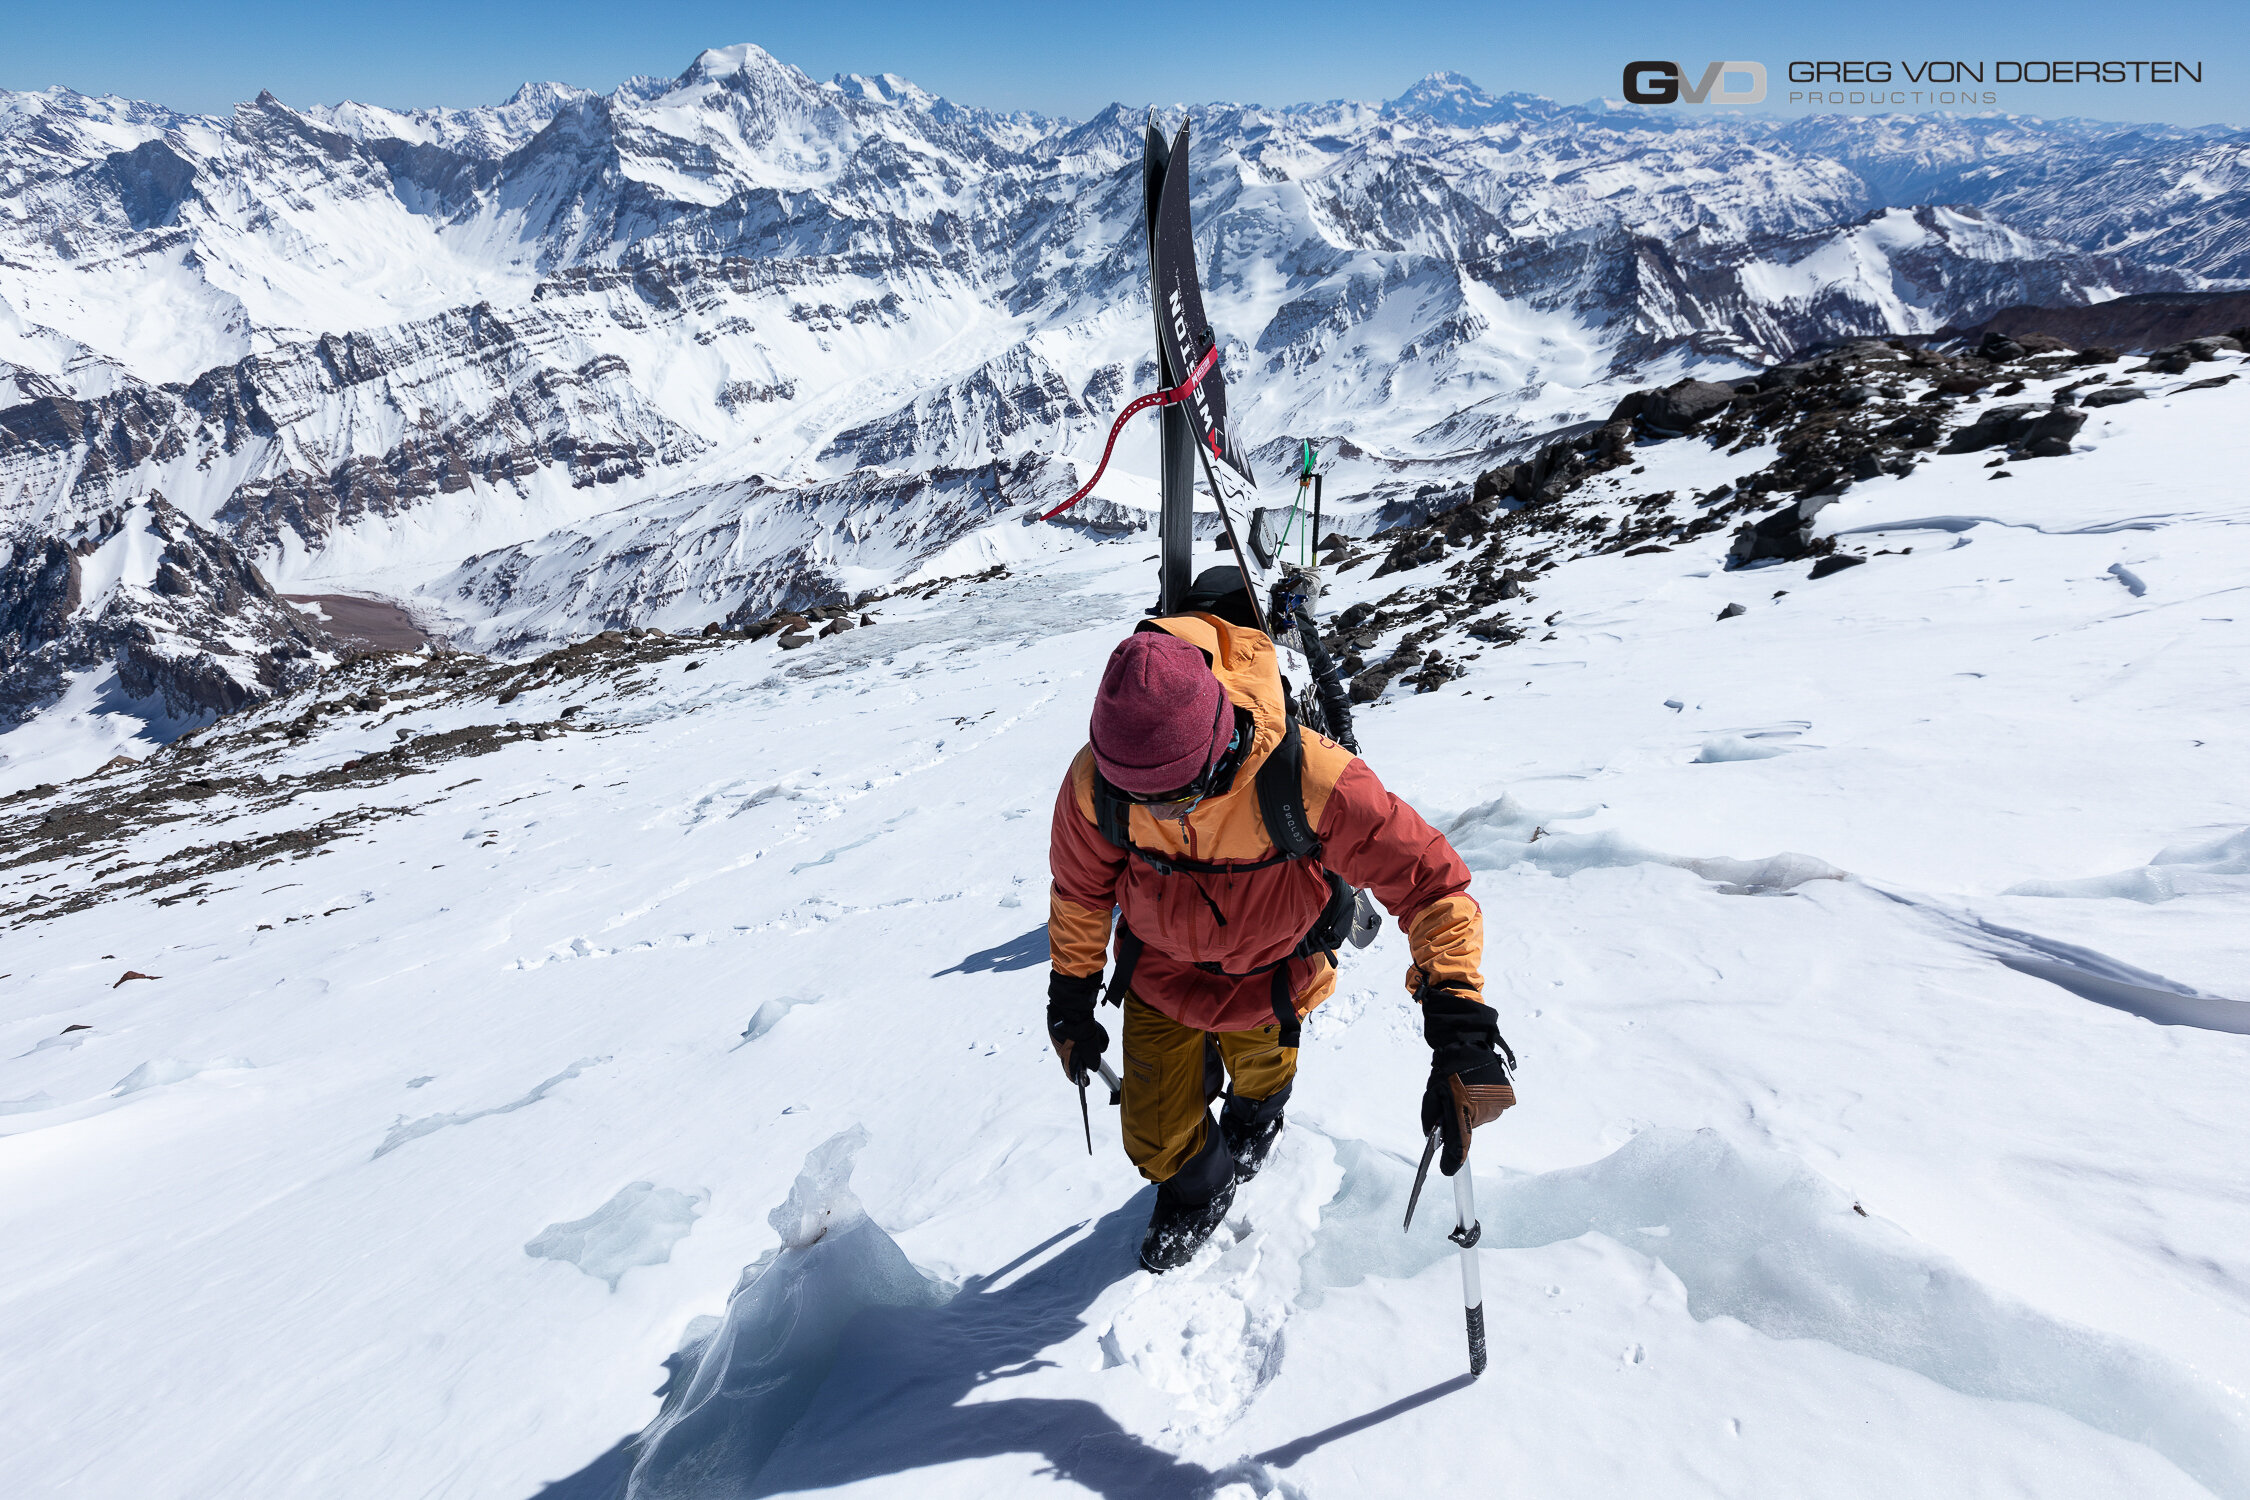 Rafael Pease above 6,100meters (20,000ft). Where you can see Aconcagua in the distance to the subject.